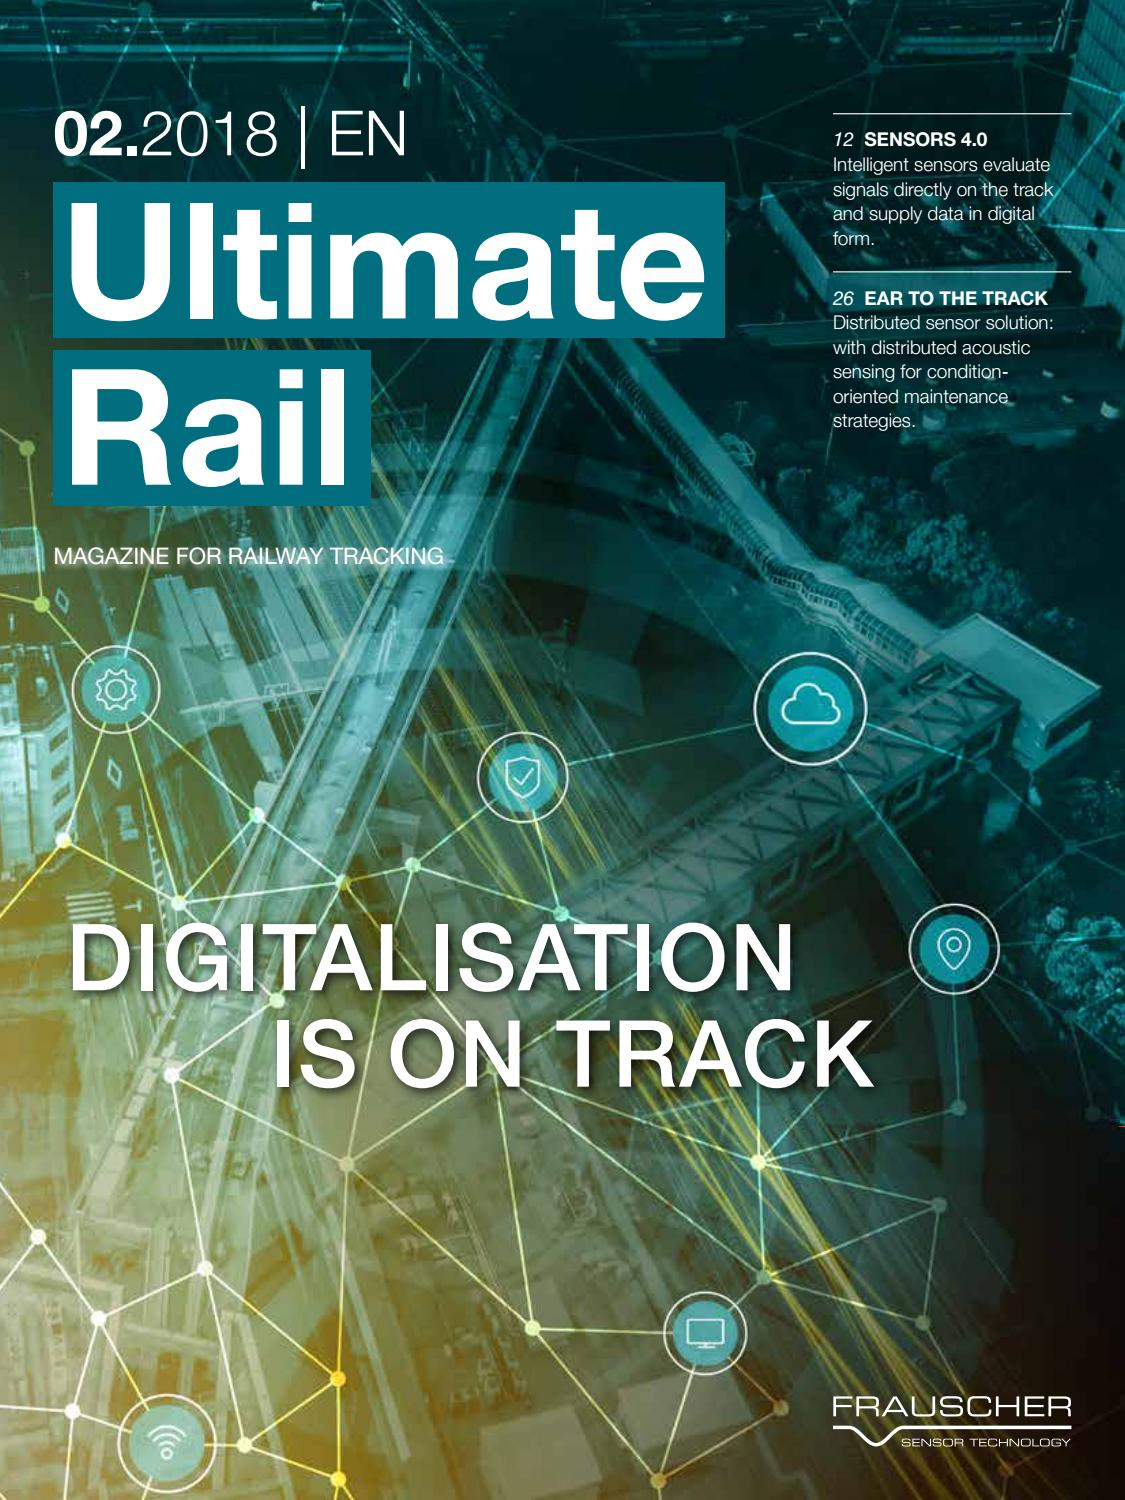 Ultimate Rail 02/2018 EN by Frauscher Sensor Technology - issuu